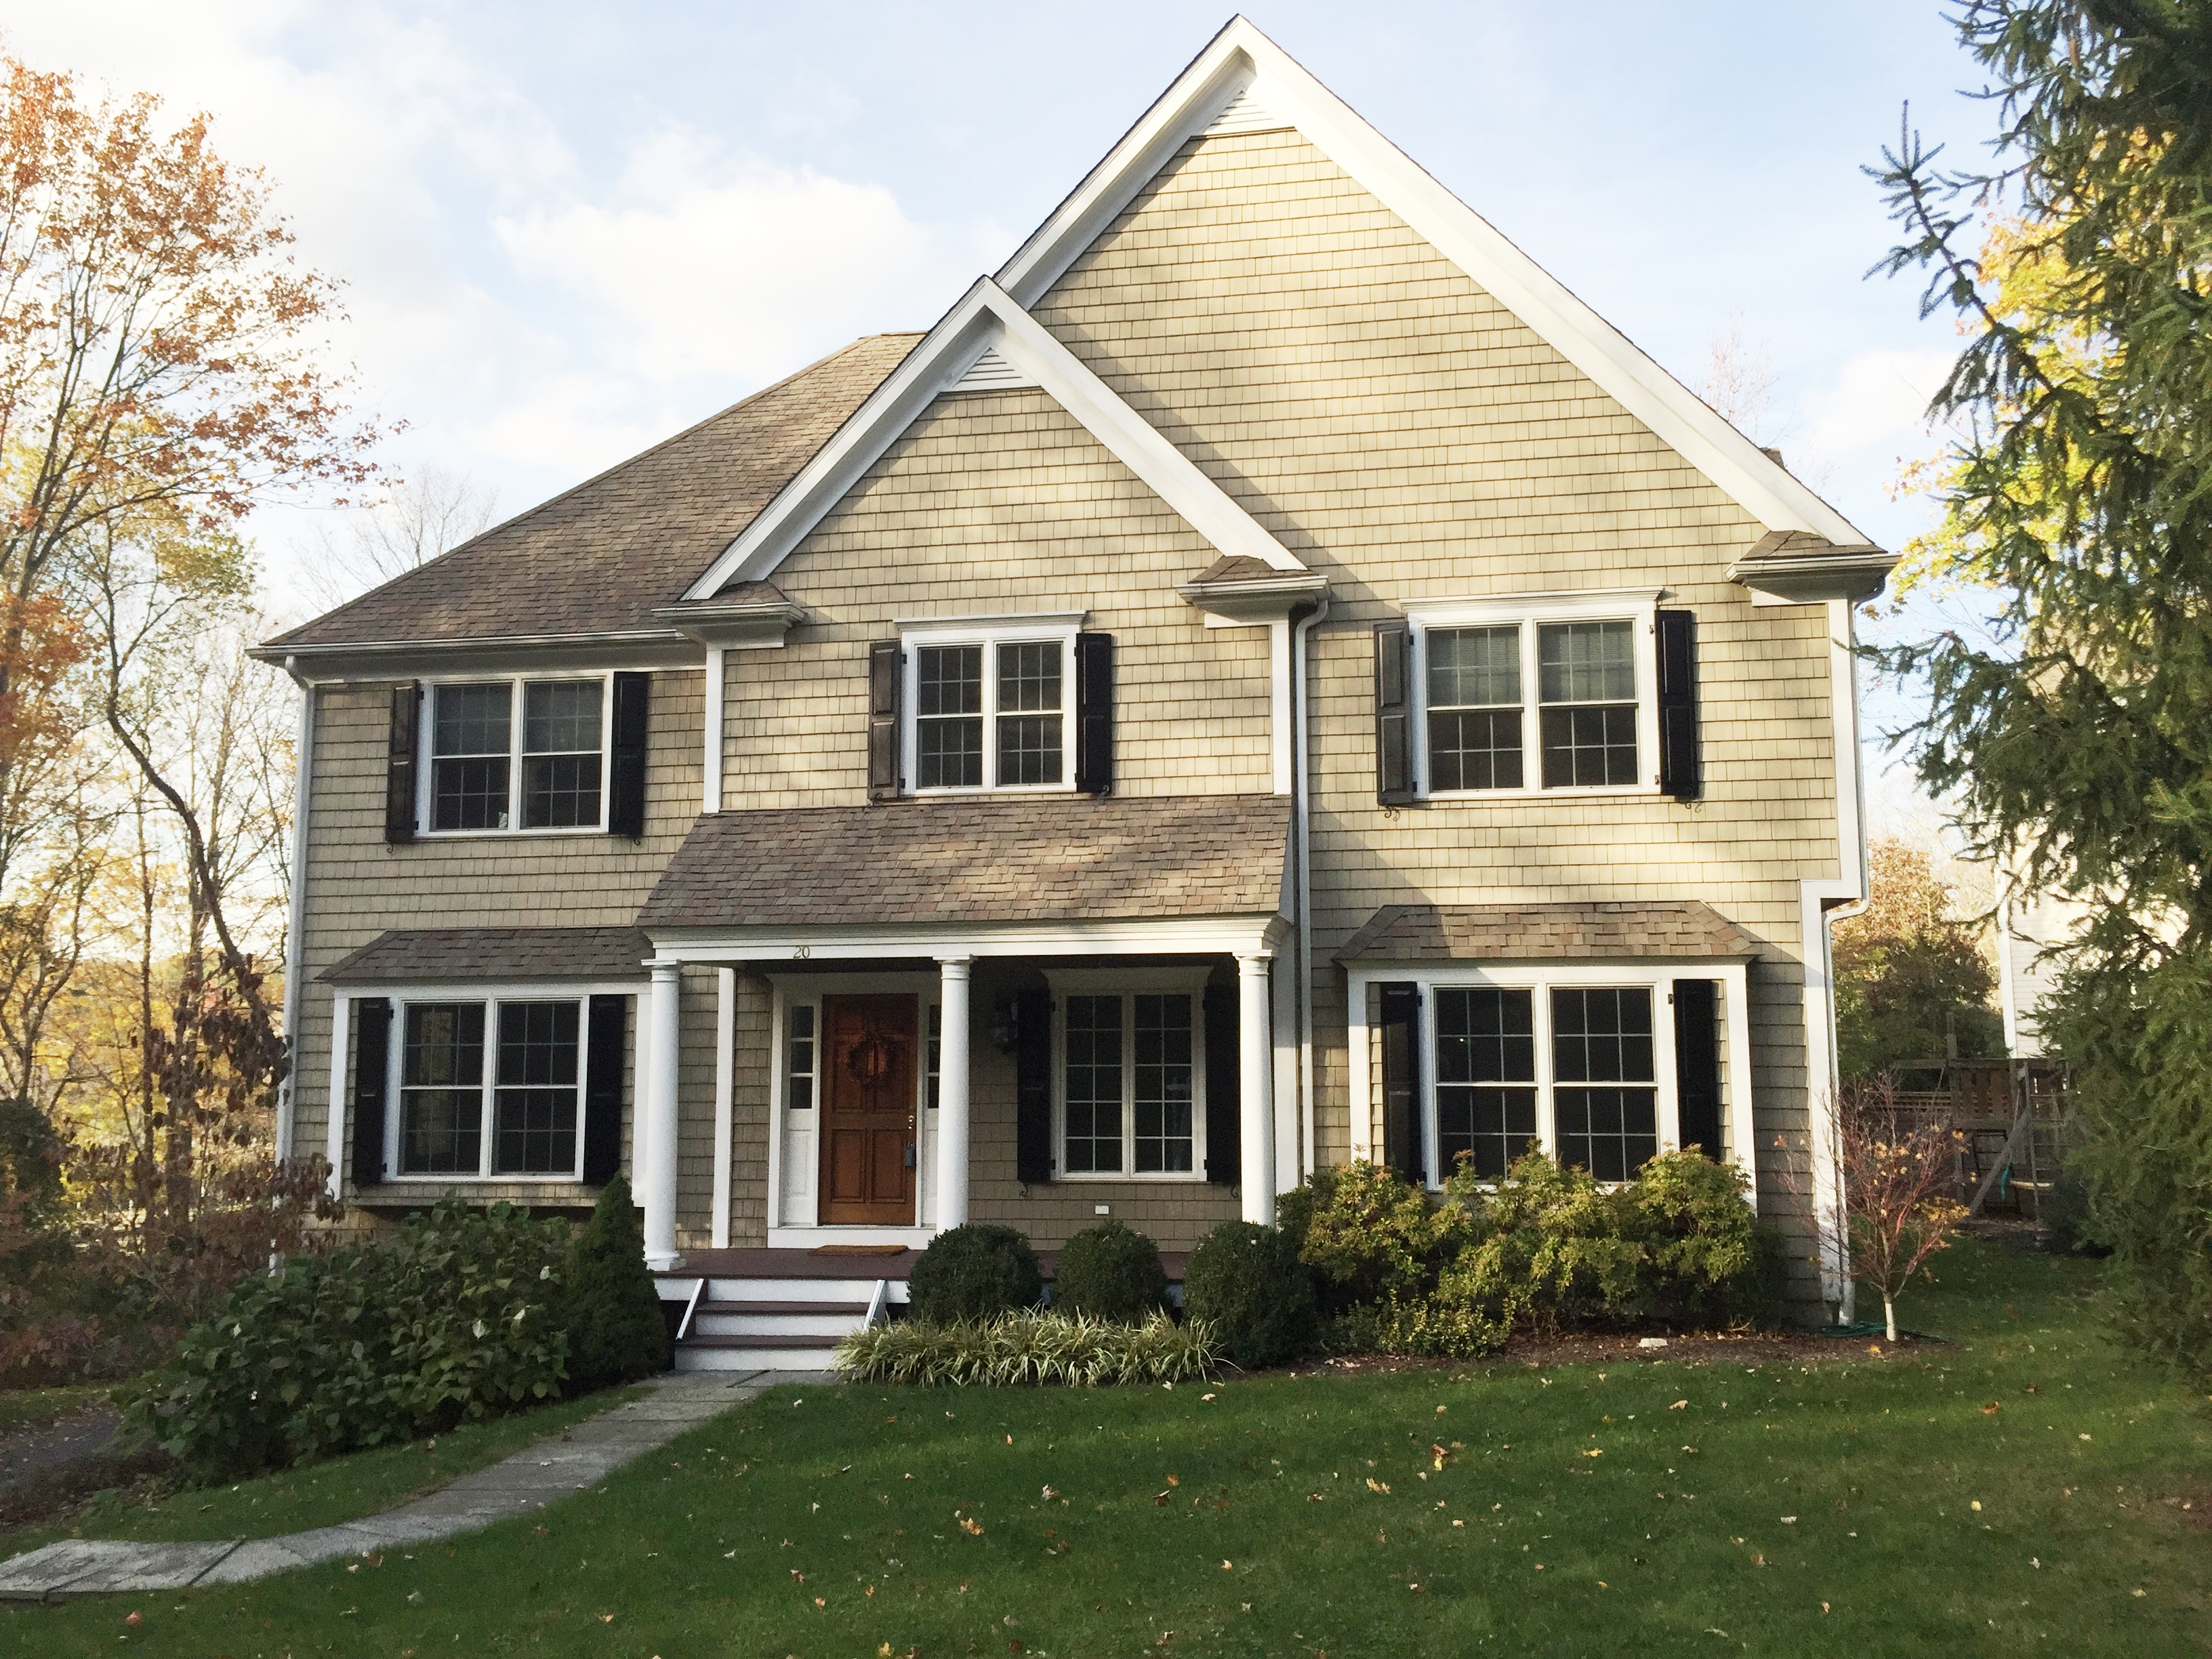 Single Family Home for Sale at Stylish, Updated Colonial 20 Mulvaney Court Ridgefield, Connecticut, 06877 United States